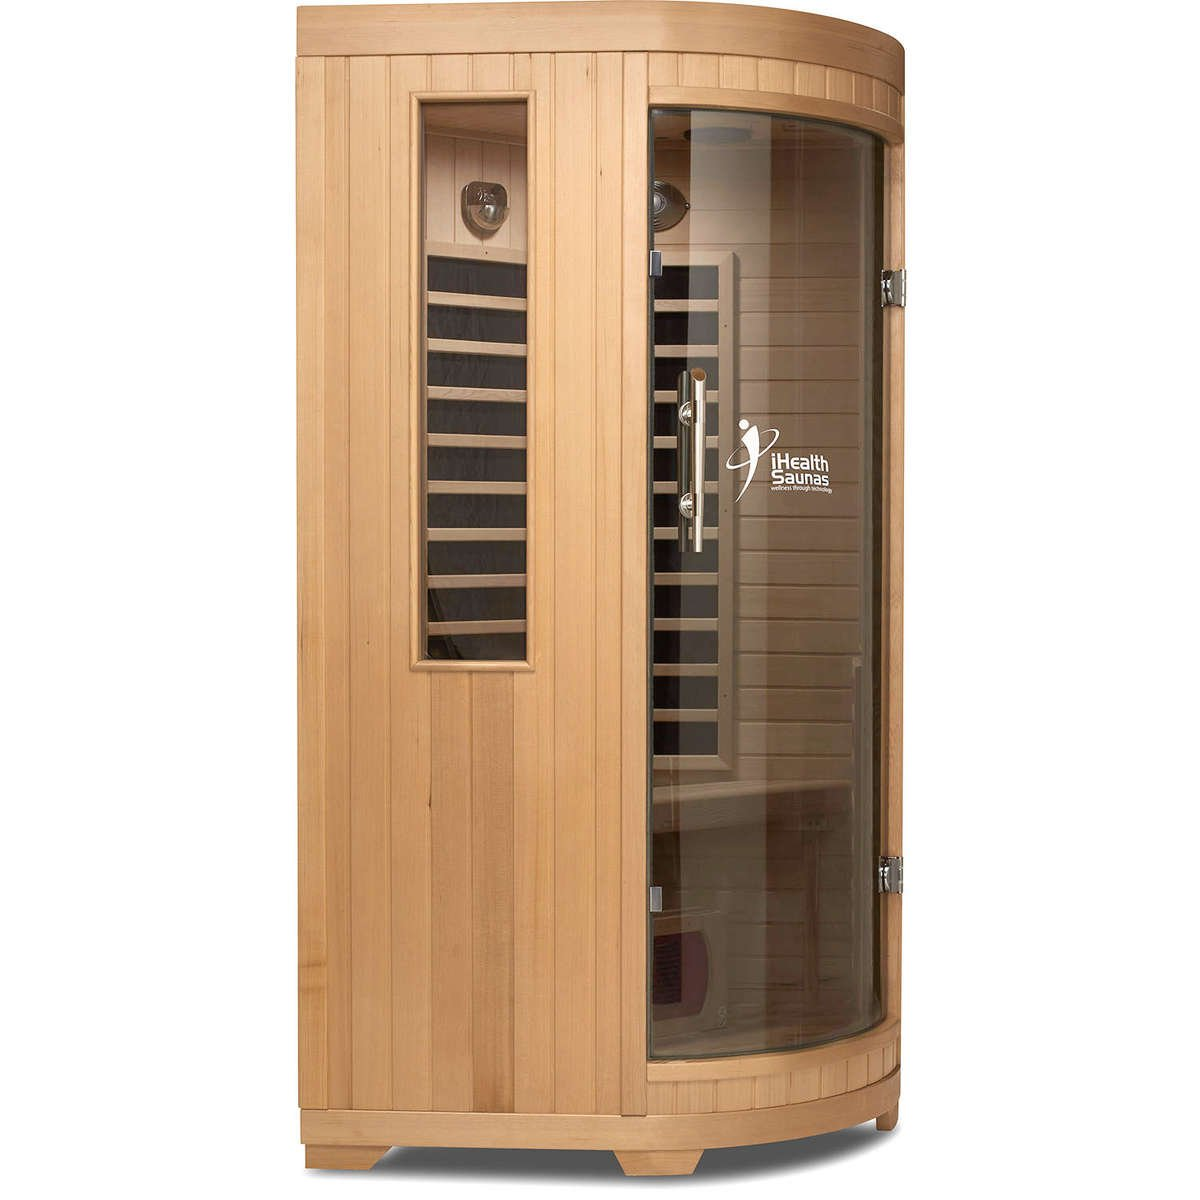 1 person deluxe far infrared sauna online ihealth saunas. Black Bedroom Furniture Sets. Home Design Ideas